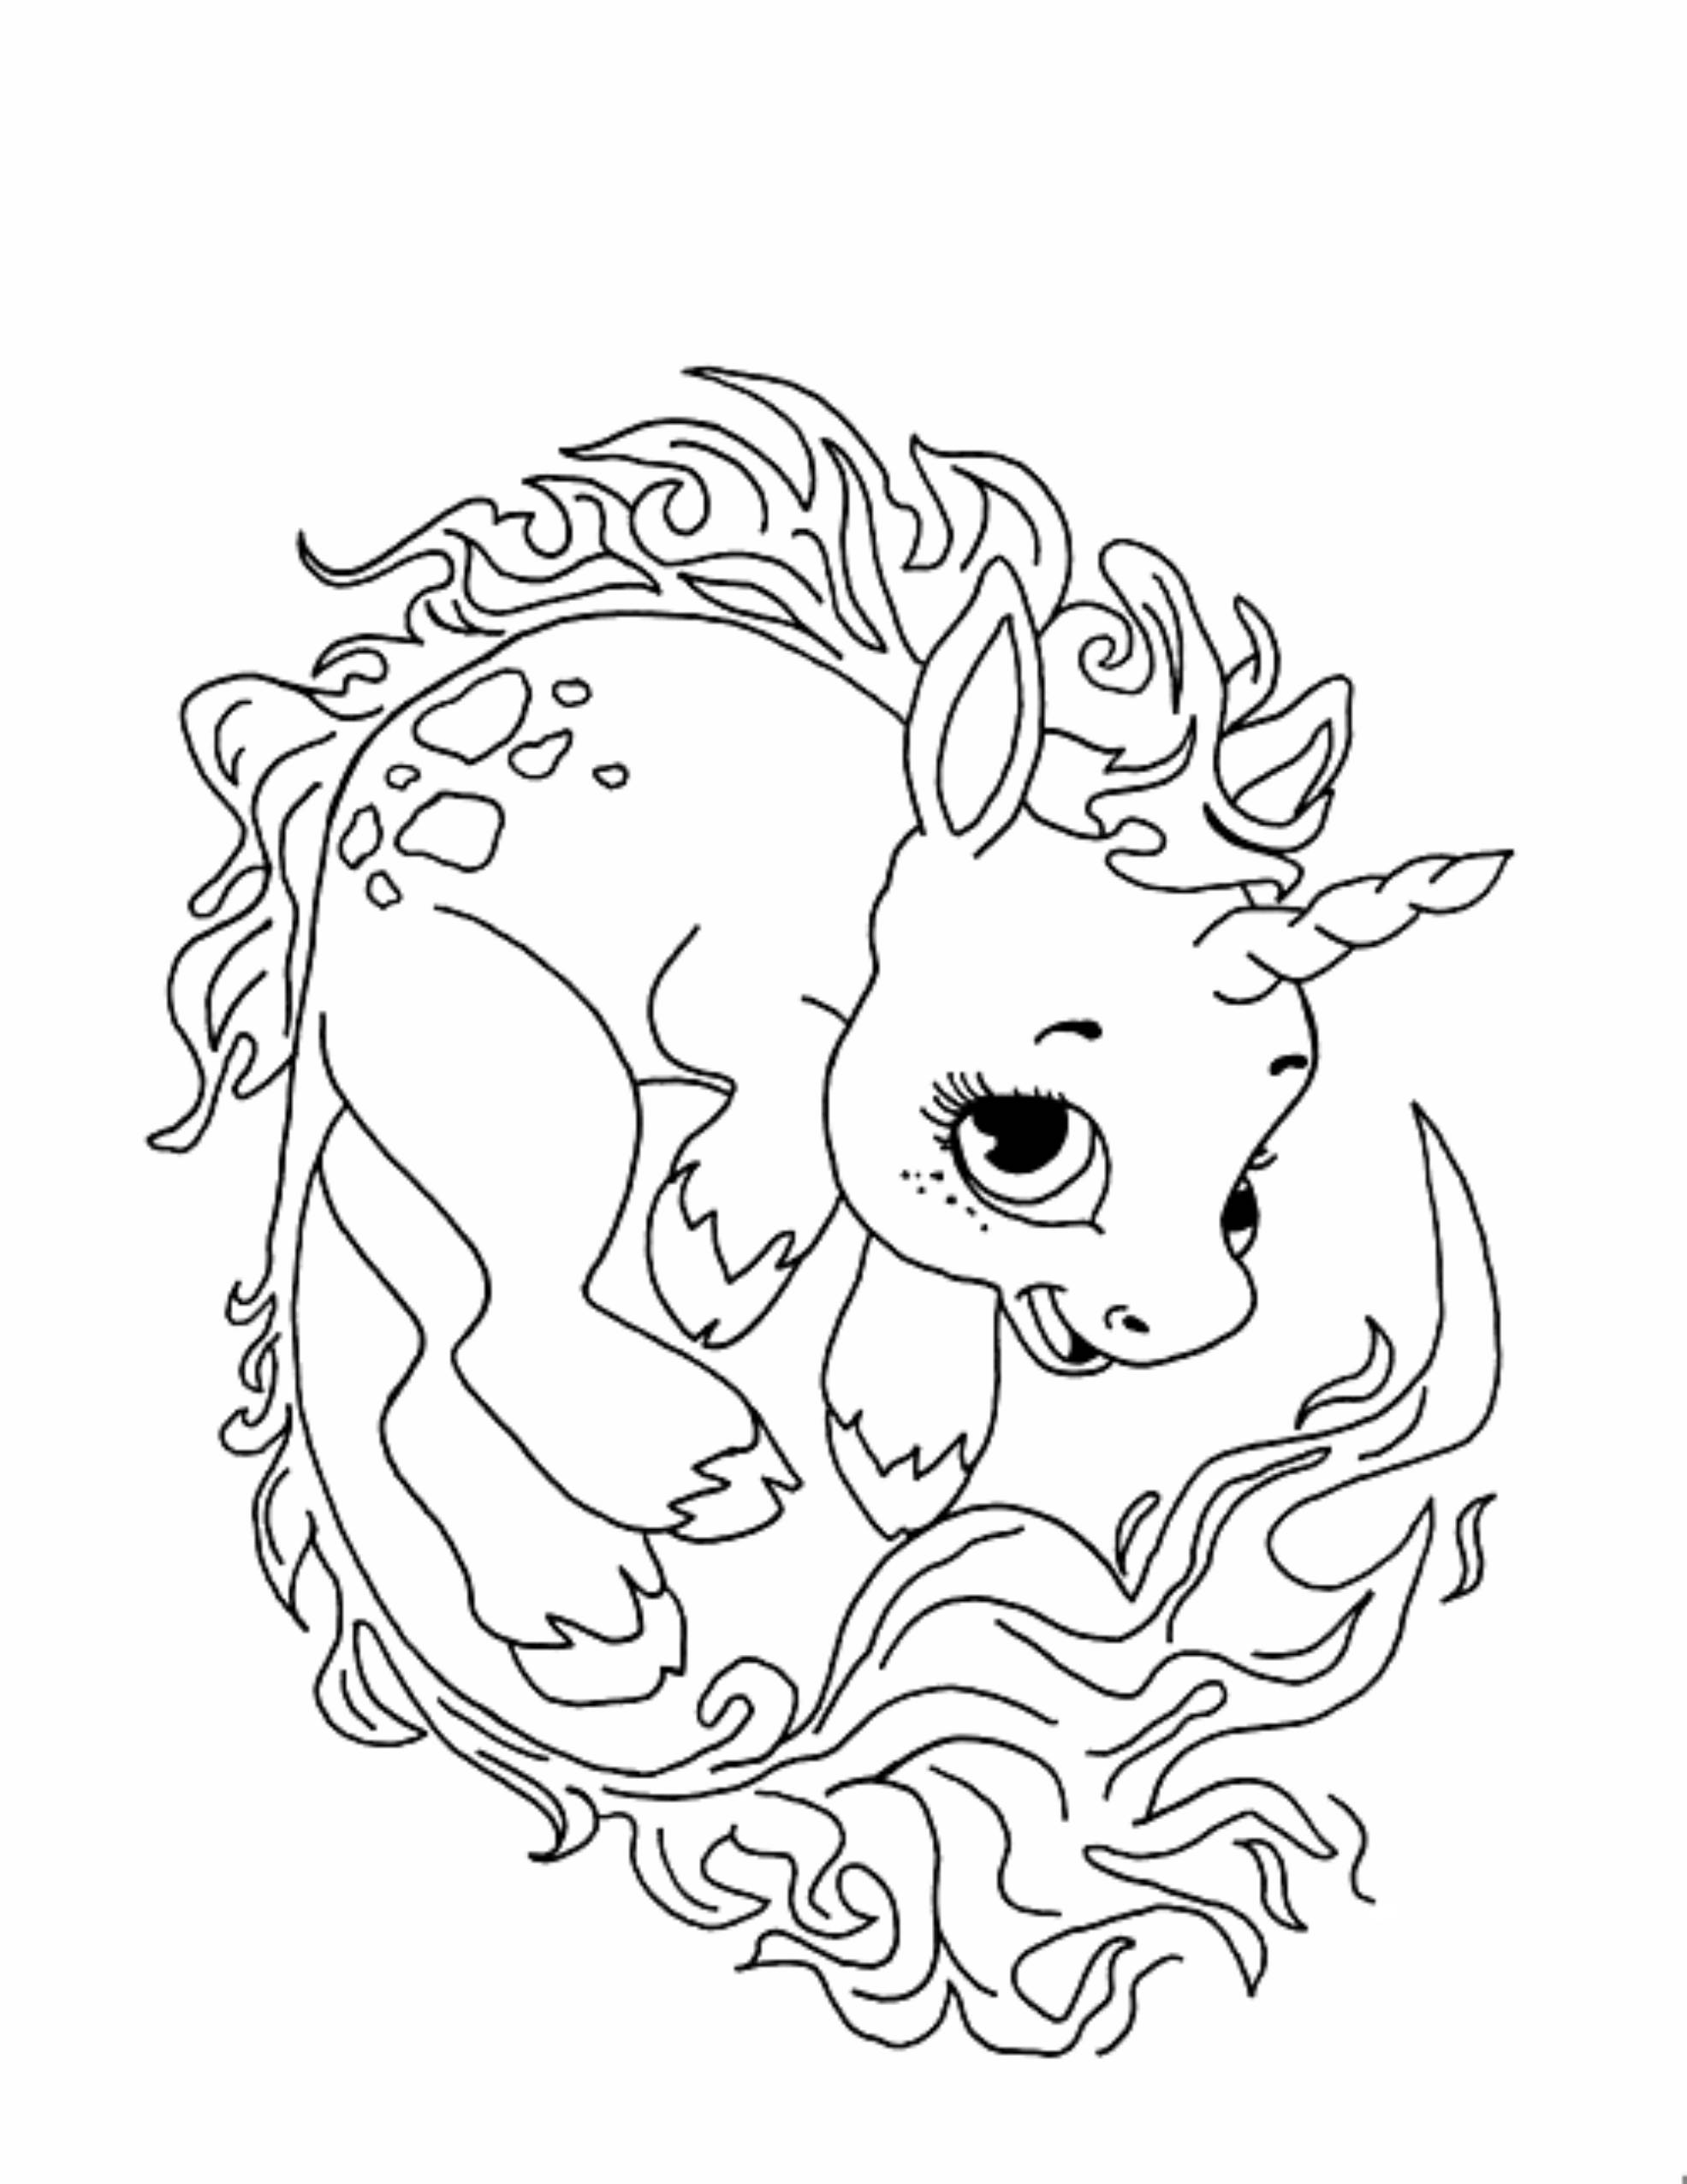 coloring worksheets unicorn print download unicorn coloring pages for children coloring worksheets unicorn